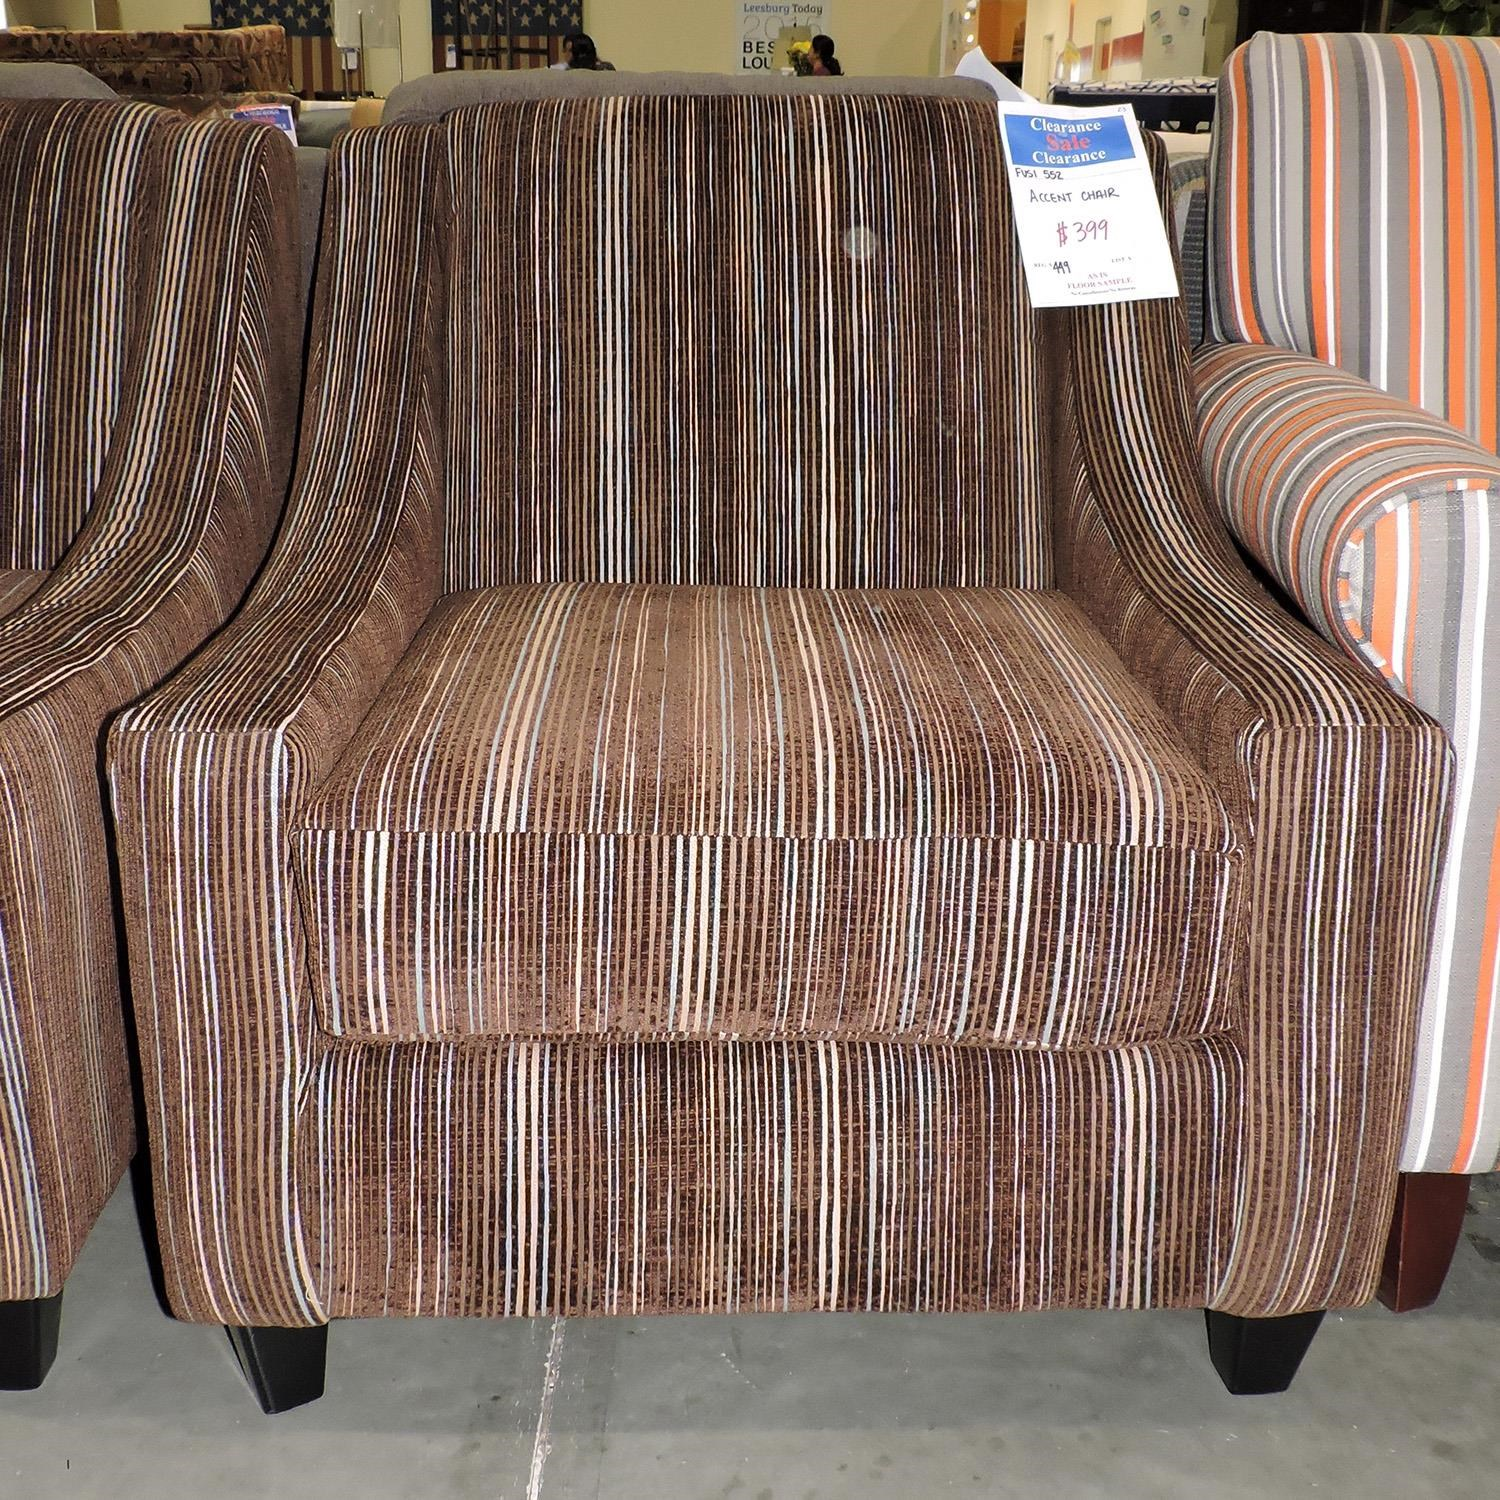 Fusion Furniture Clearance Accent Chair - Item Number: 552477531